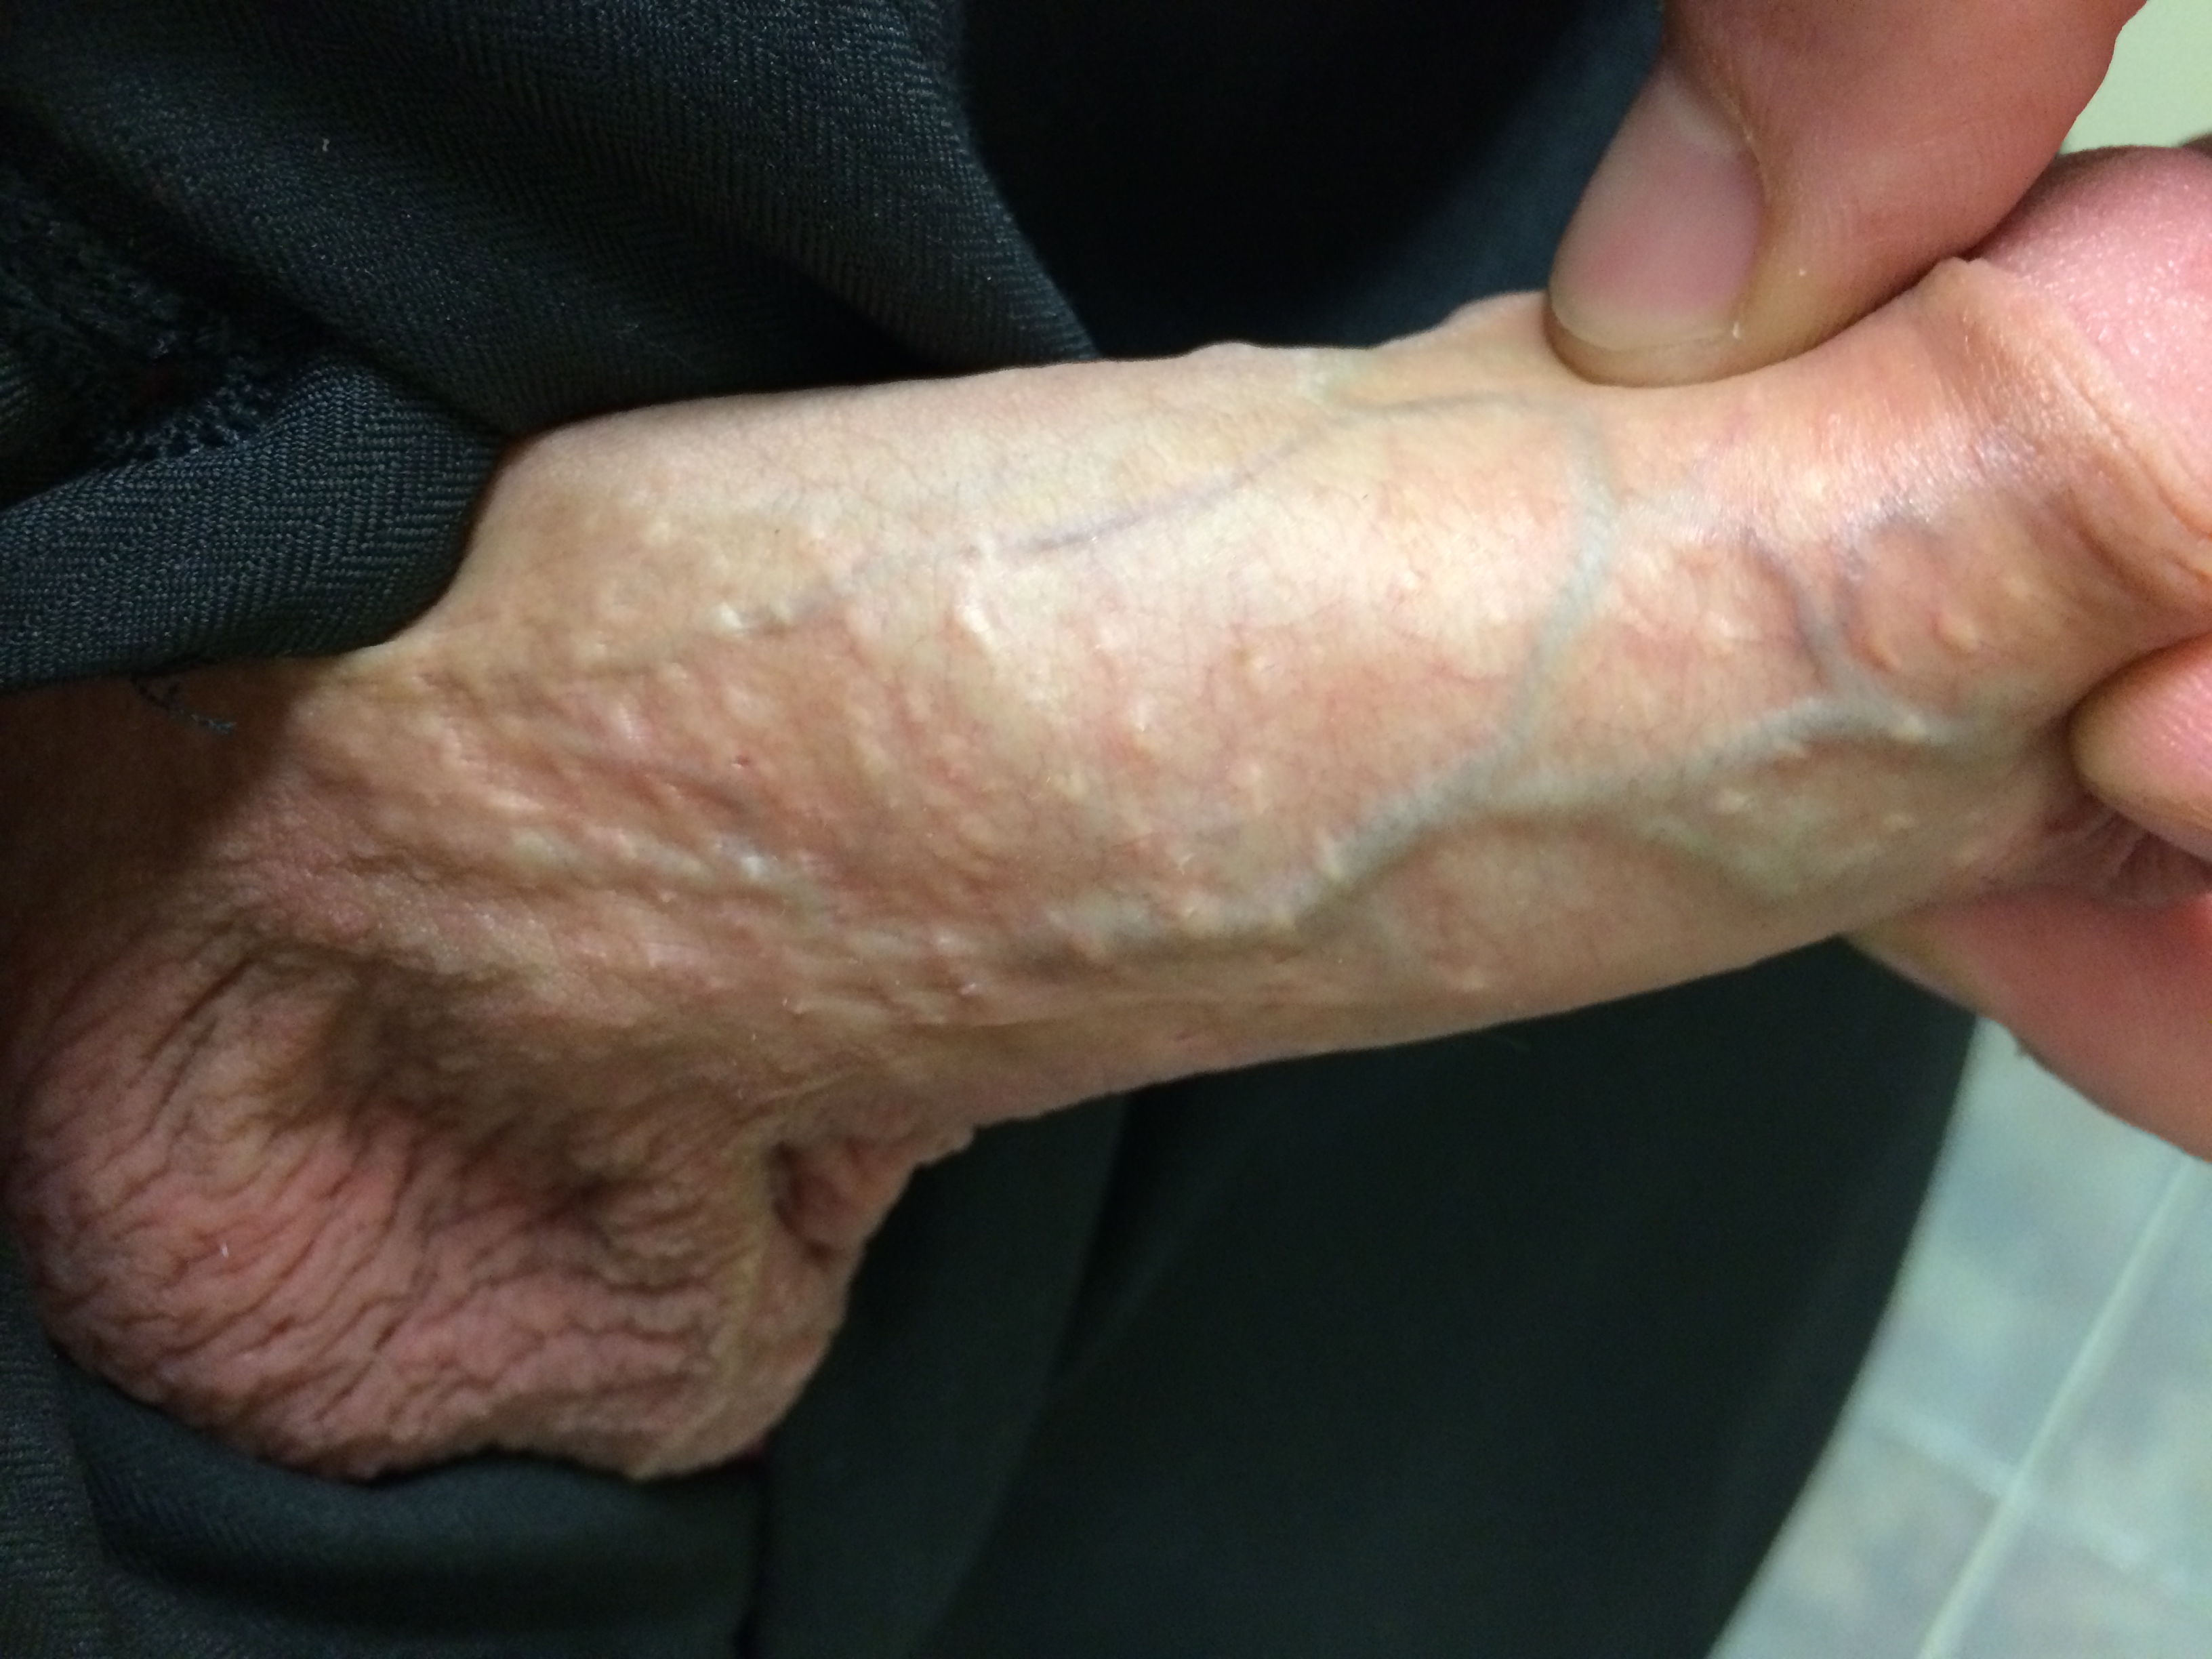 Small white spots on penis